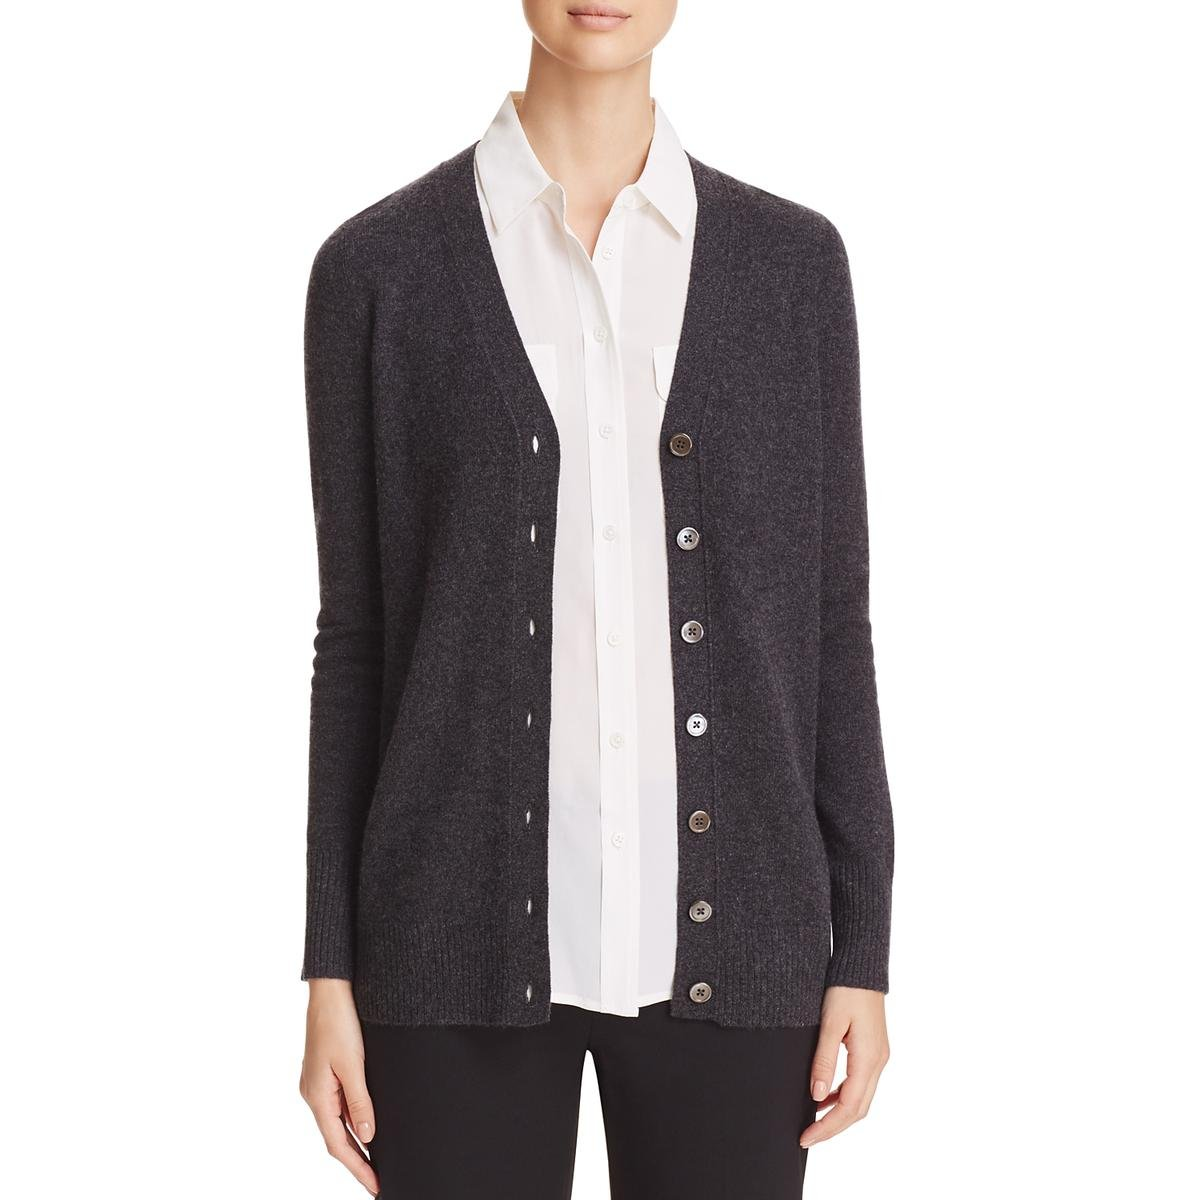 Private Label Womens Cashmere Ribbed Trim Cardigan Top Gray M by Private Label (Image #1)